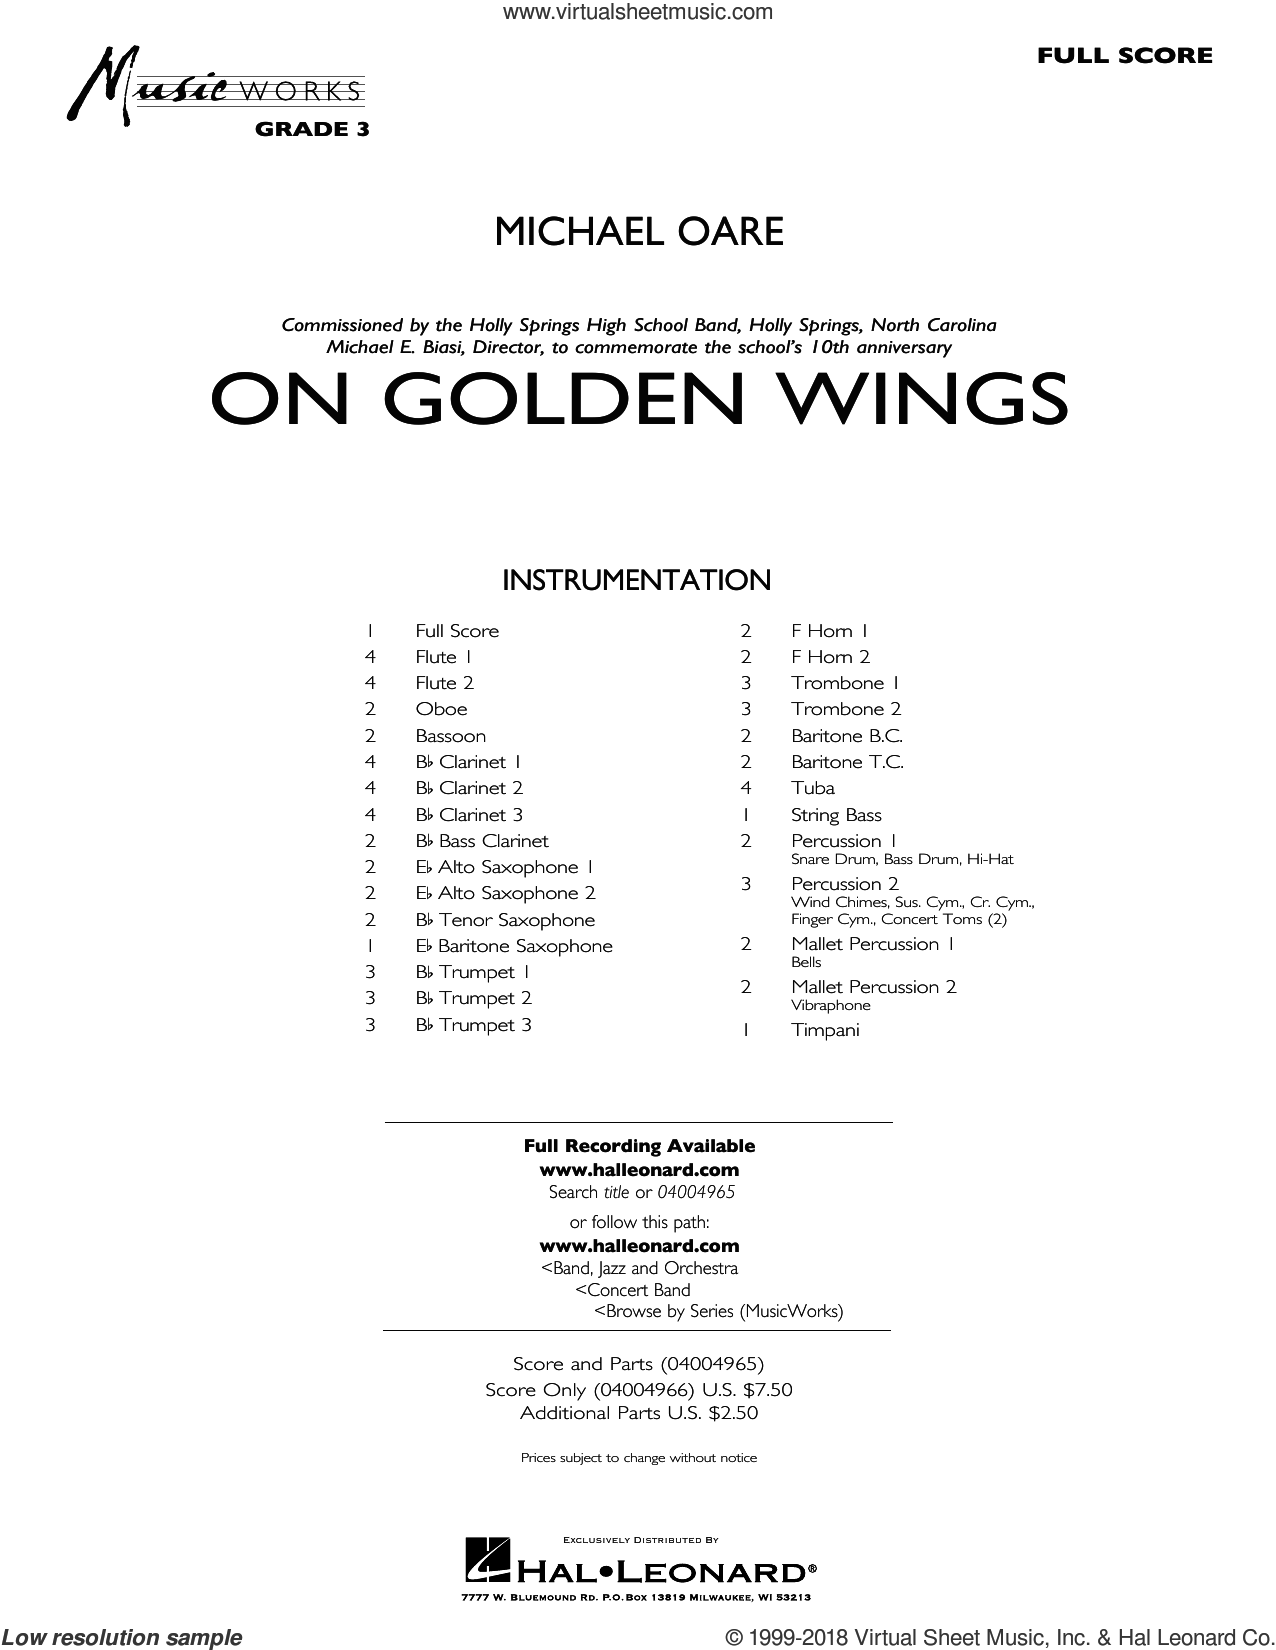 On Golden Wings (COMPLETE) sheet music for concert band by Michael Oare, intermediate skill level